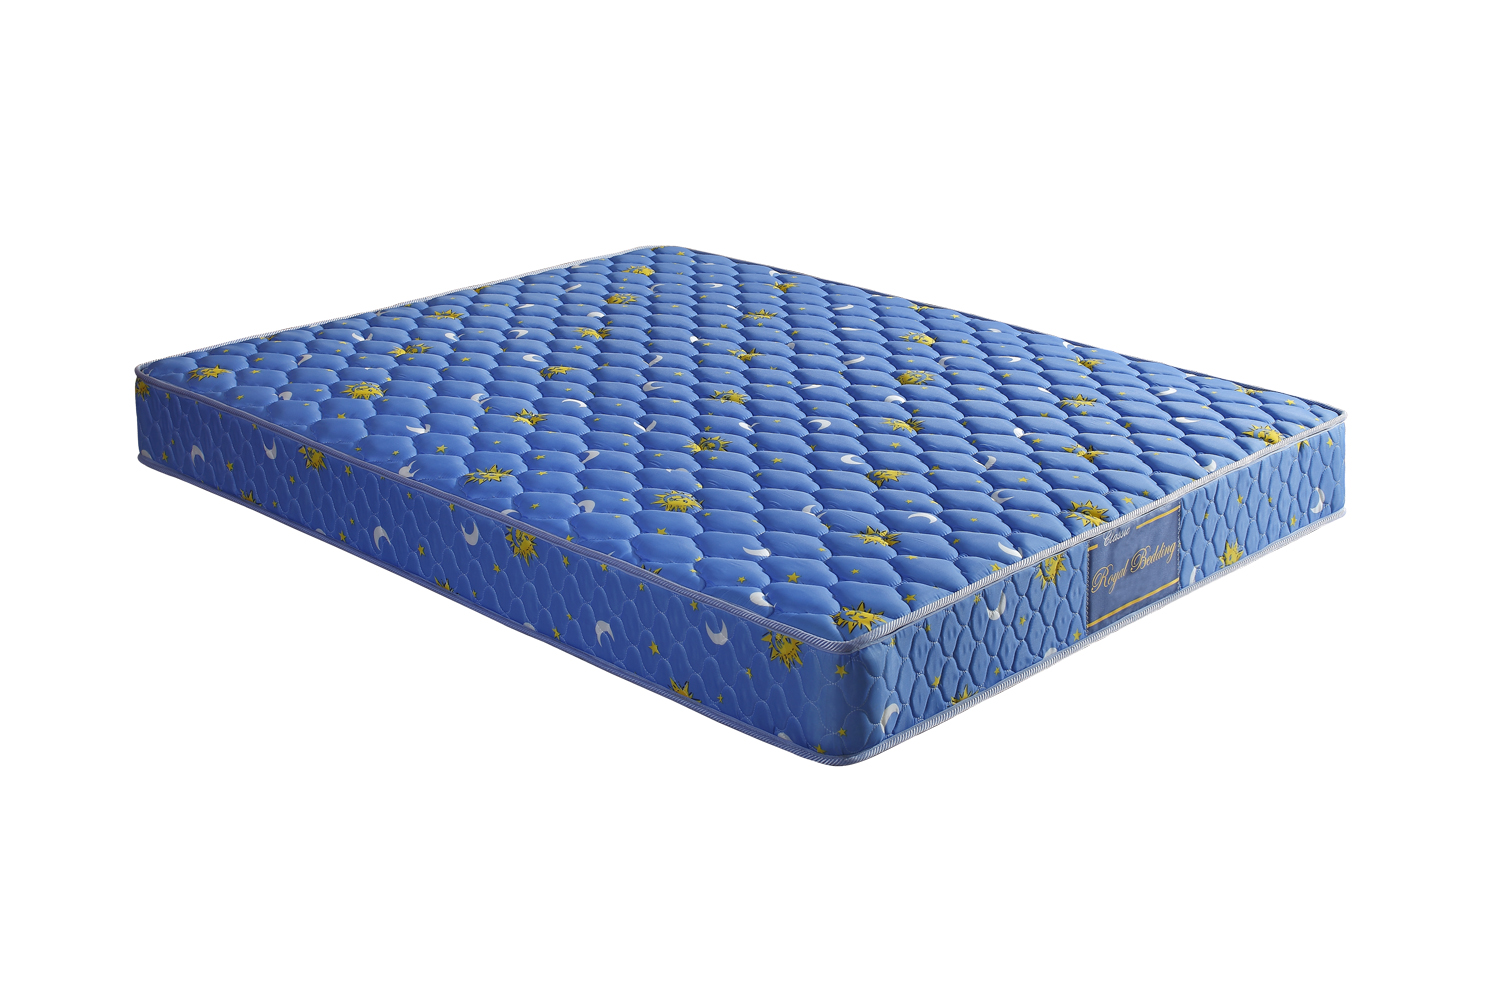 Cheap queen mattress for sale home version 2 who sells merax comfort sleep 6 inch quilted Cheapest queen mattress